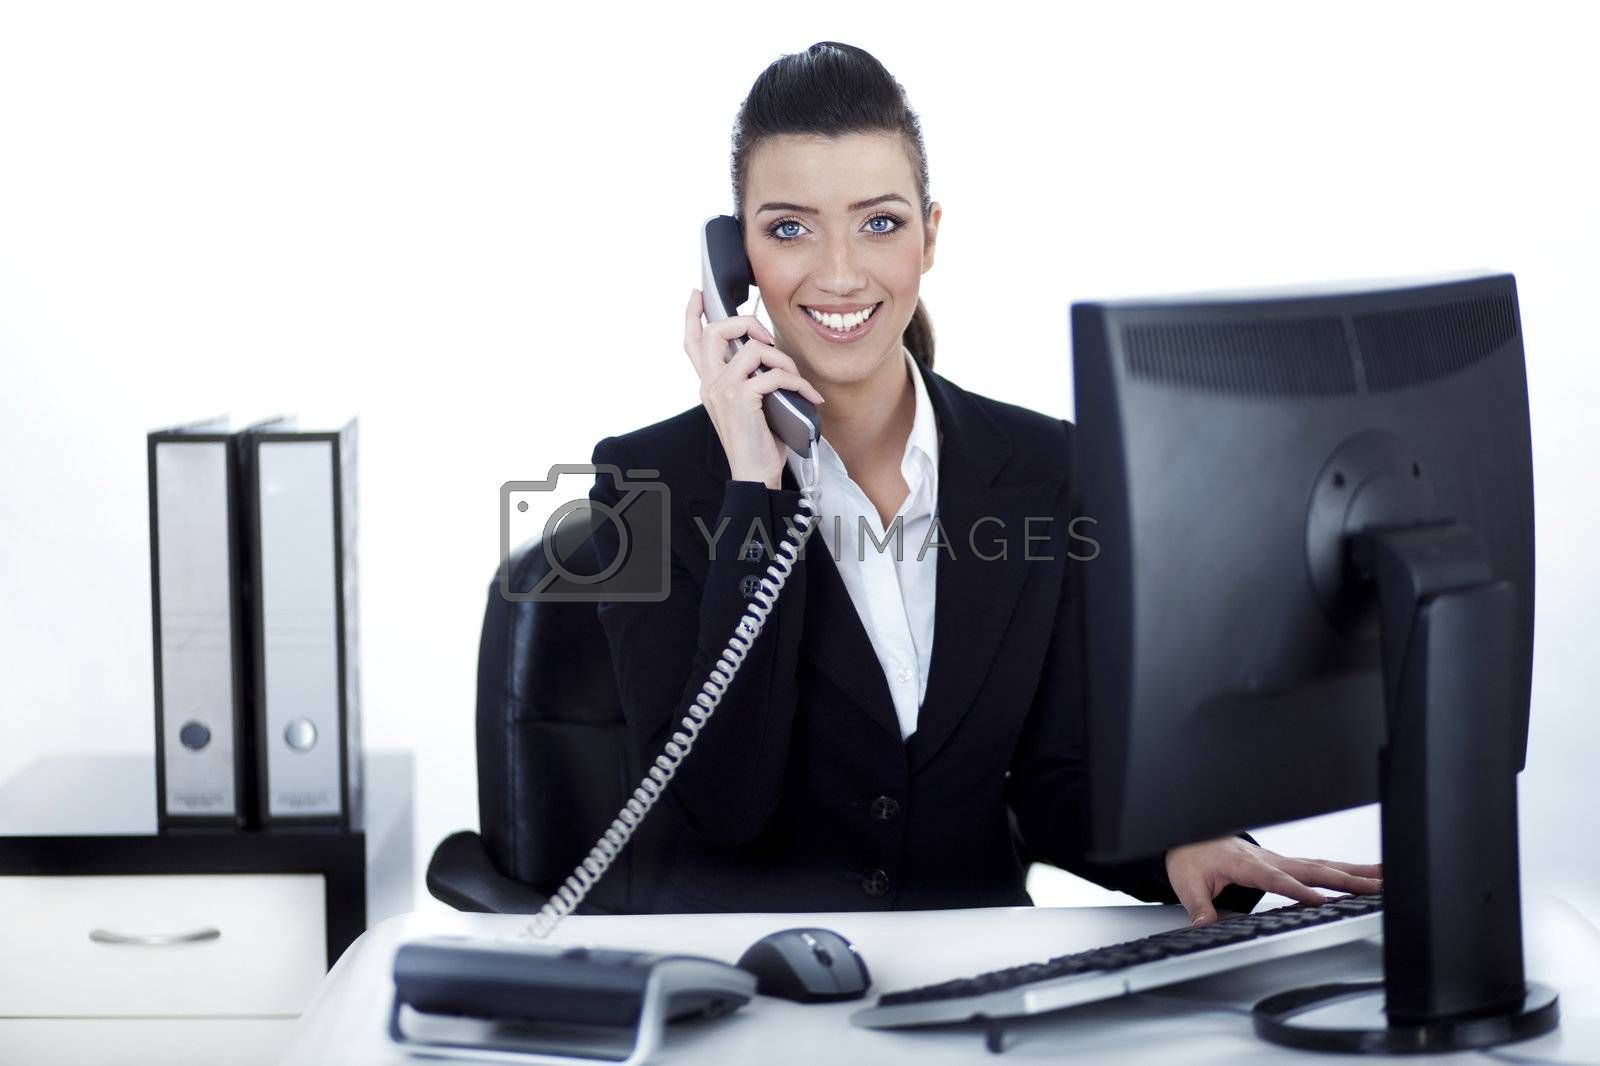 Royalty free image of Smiling woman busy over phone by get4net